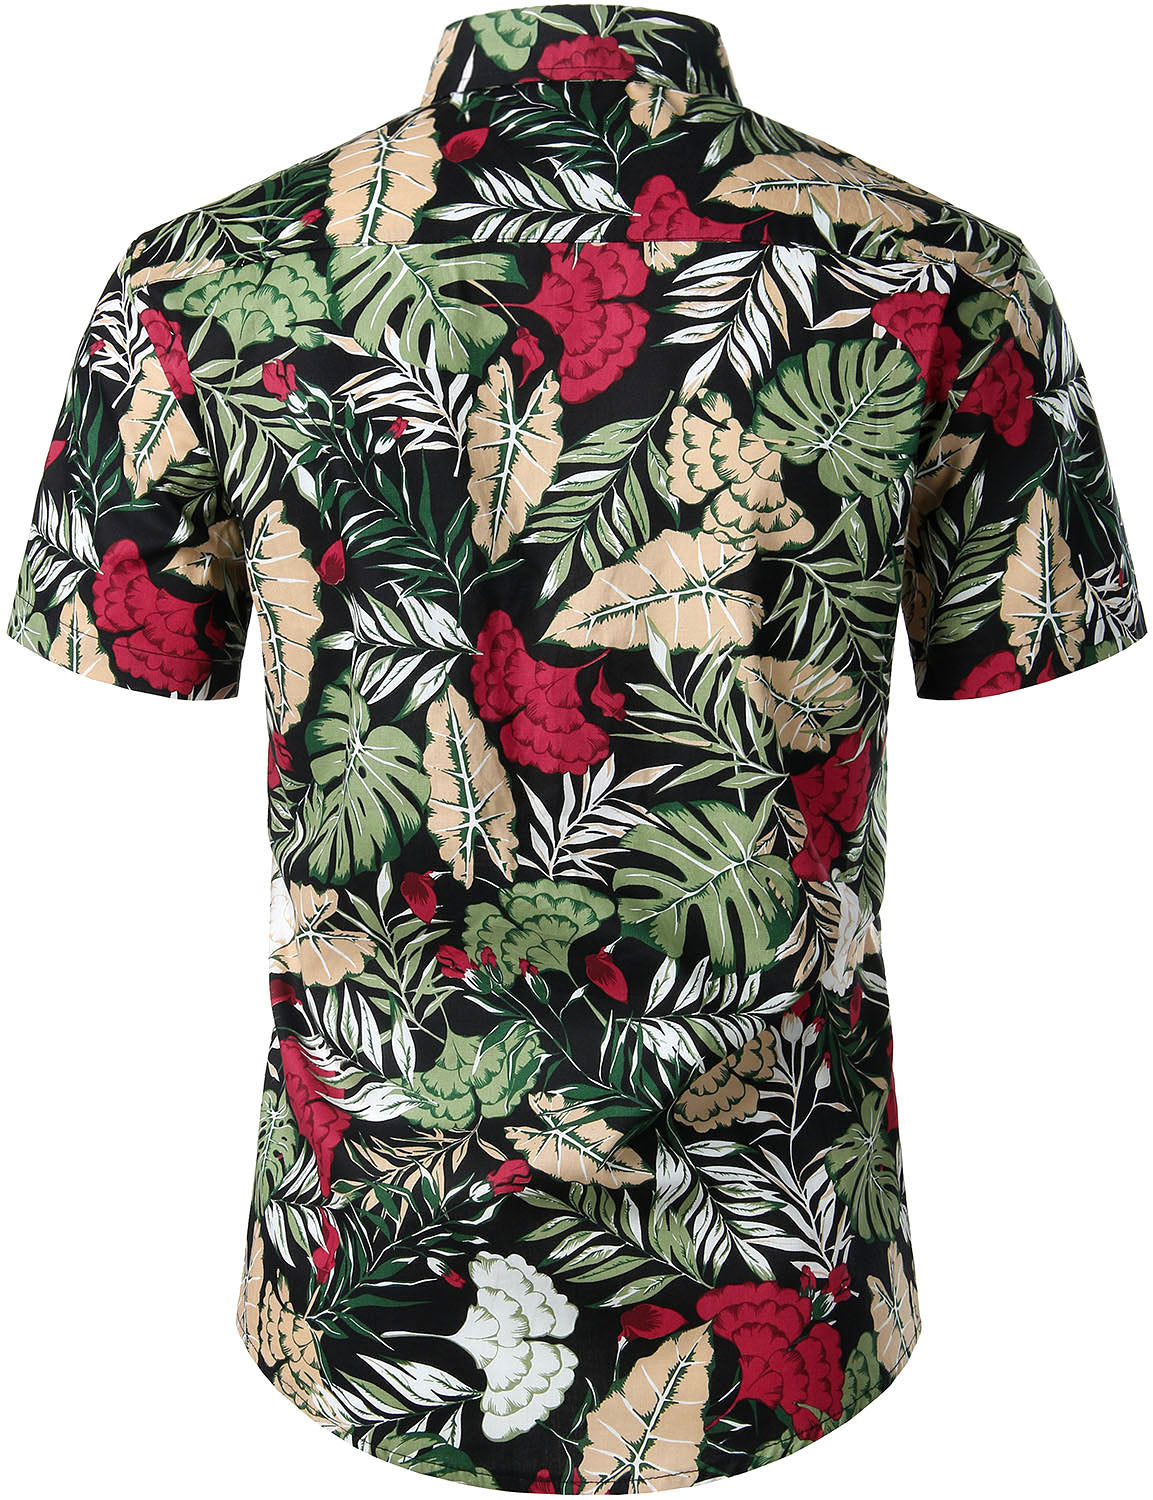 JOGAL Men's Cotton Button Down Short Sleeve Hawaiian Shirt (Cockscomb)